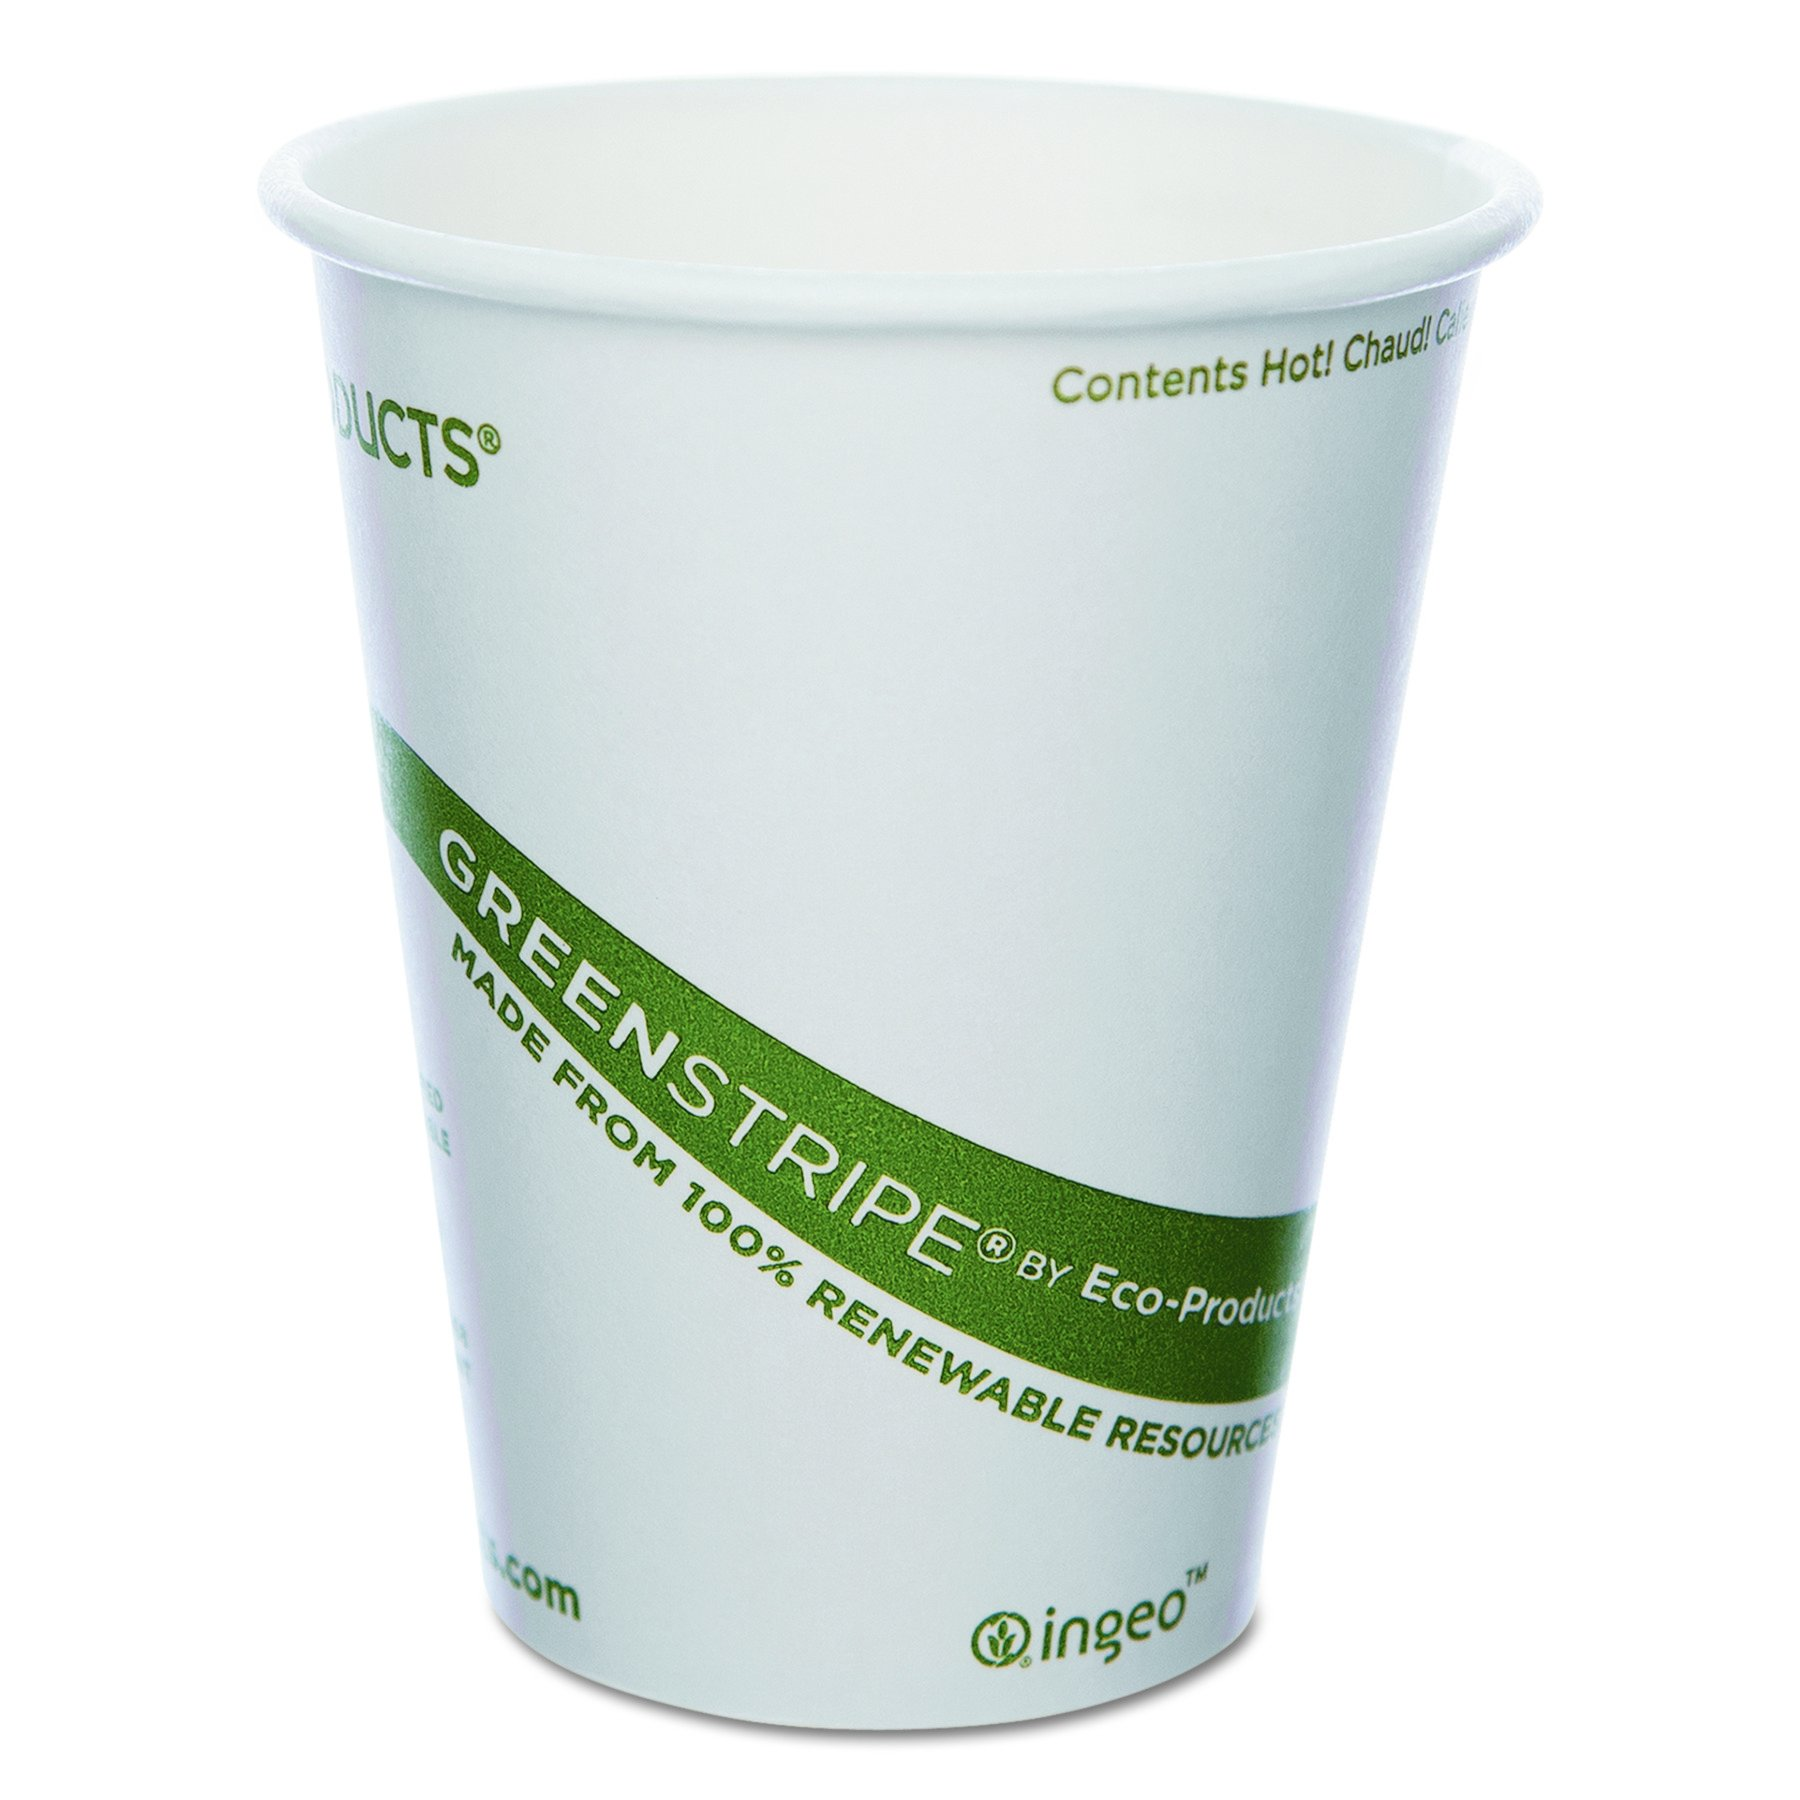 Eco-Products GreenStripe Compostable Hot Cup - 8 ounce - Case of 1000 - EP-BHC8-GS